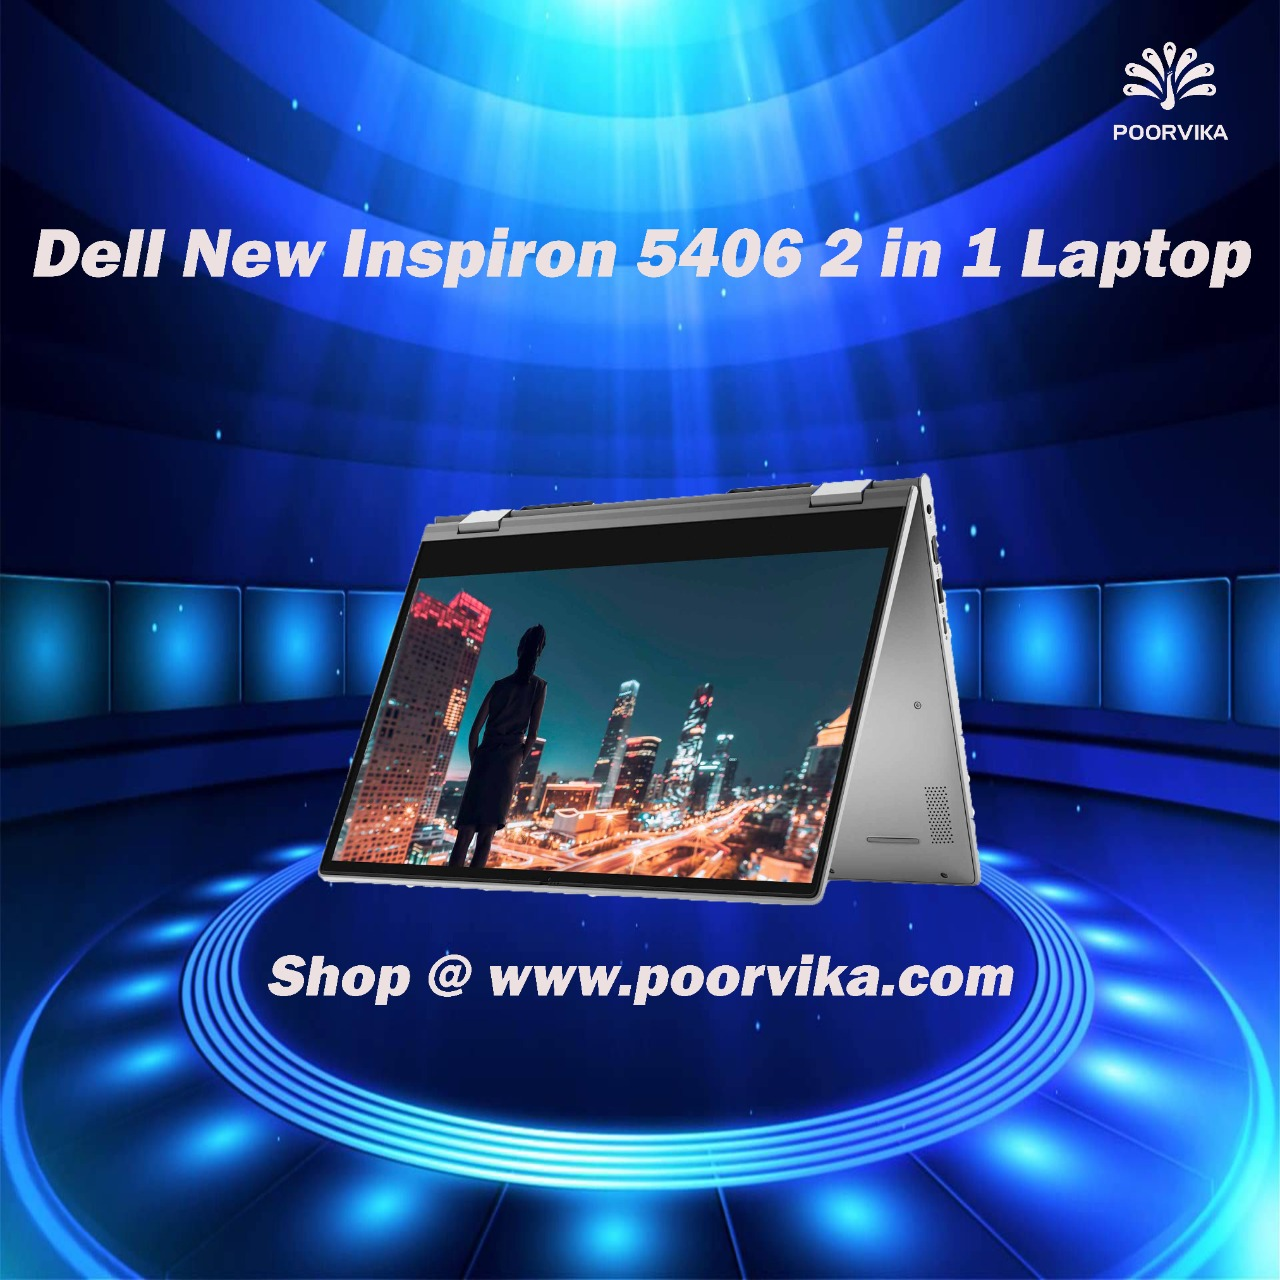 Dell-New-Inspiron-5406-Intel-Core-i5-11th-Gen-Windows-10-Home-2-in-1-Laptop-D560368WIN9S-Everything-you-need-to-know